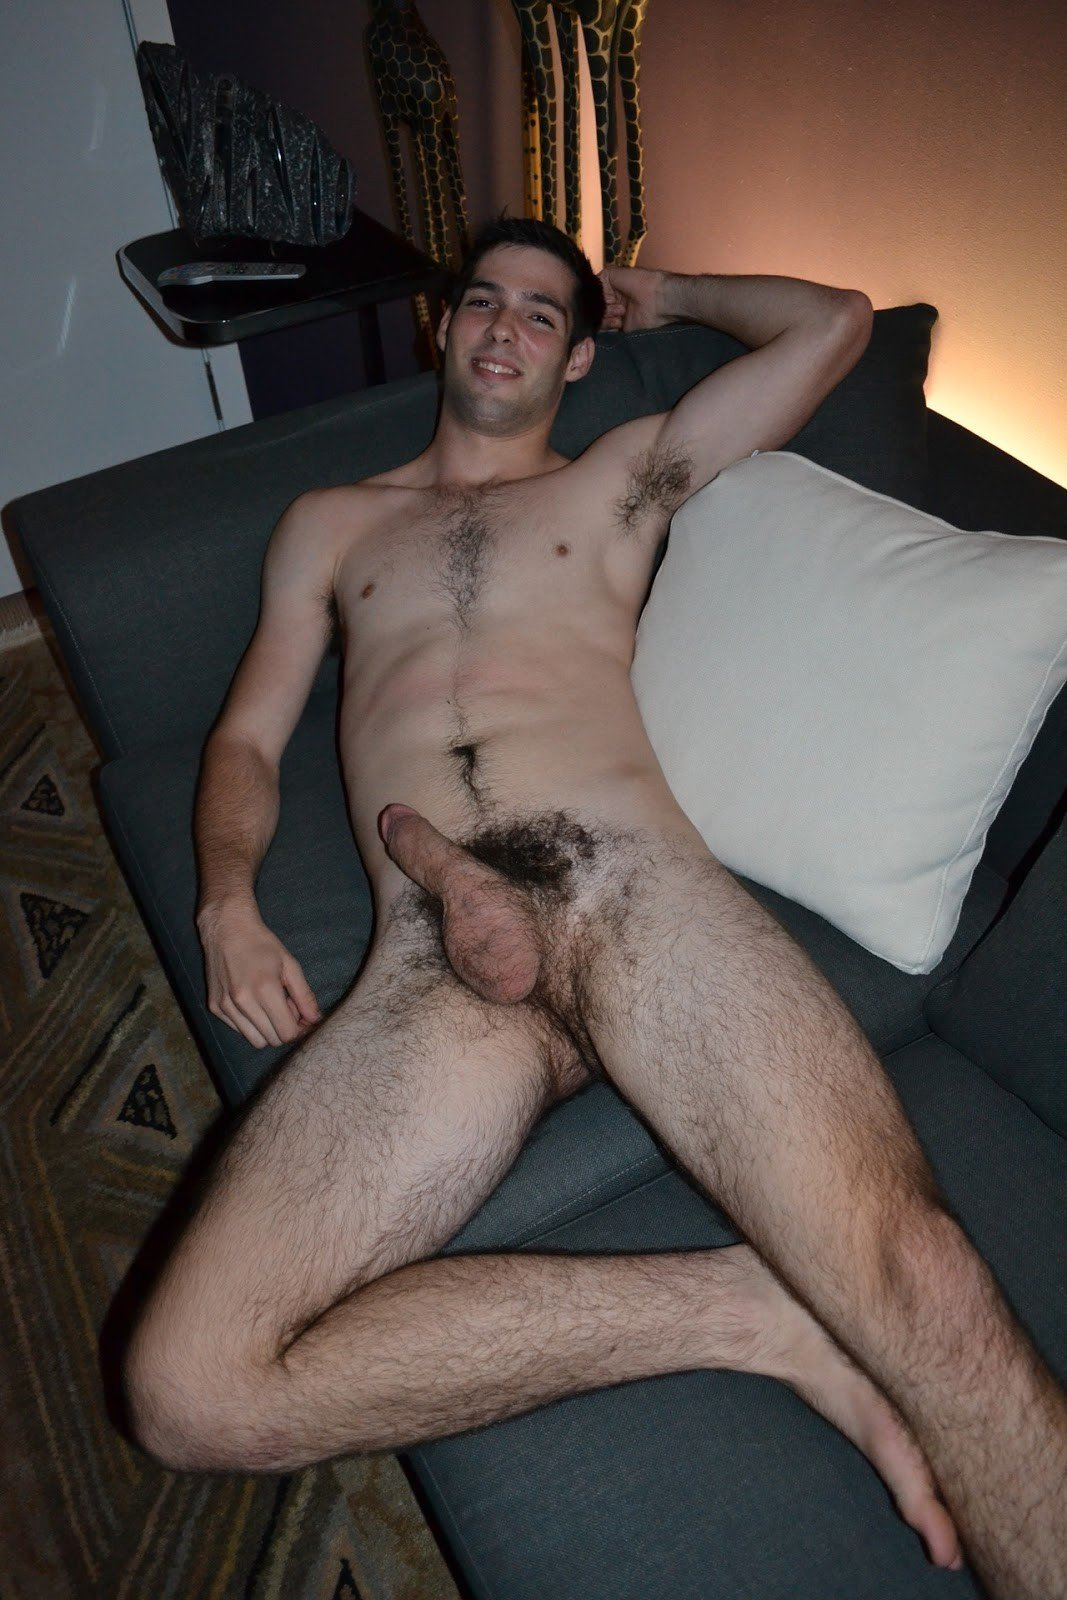 pic of a naked guy with a boner